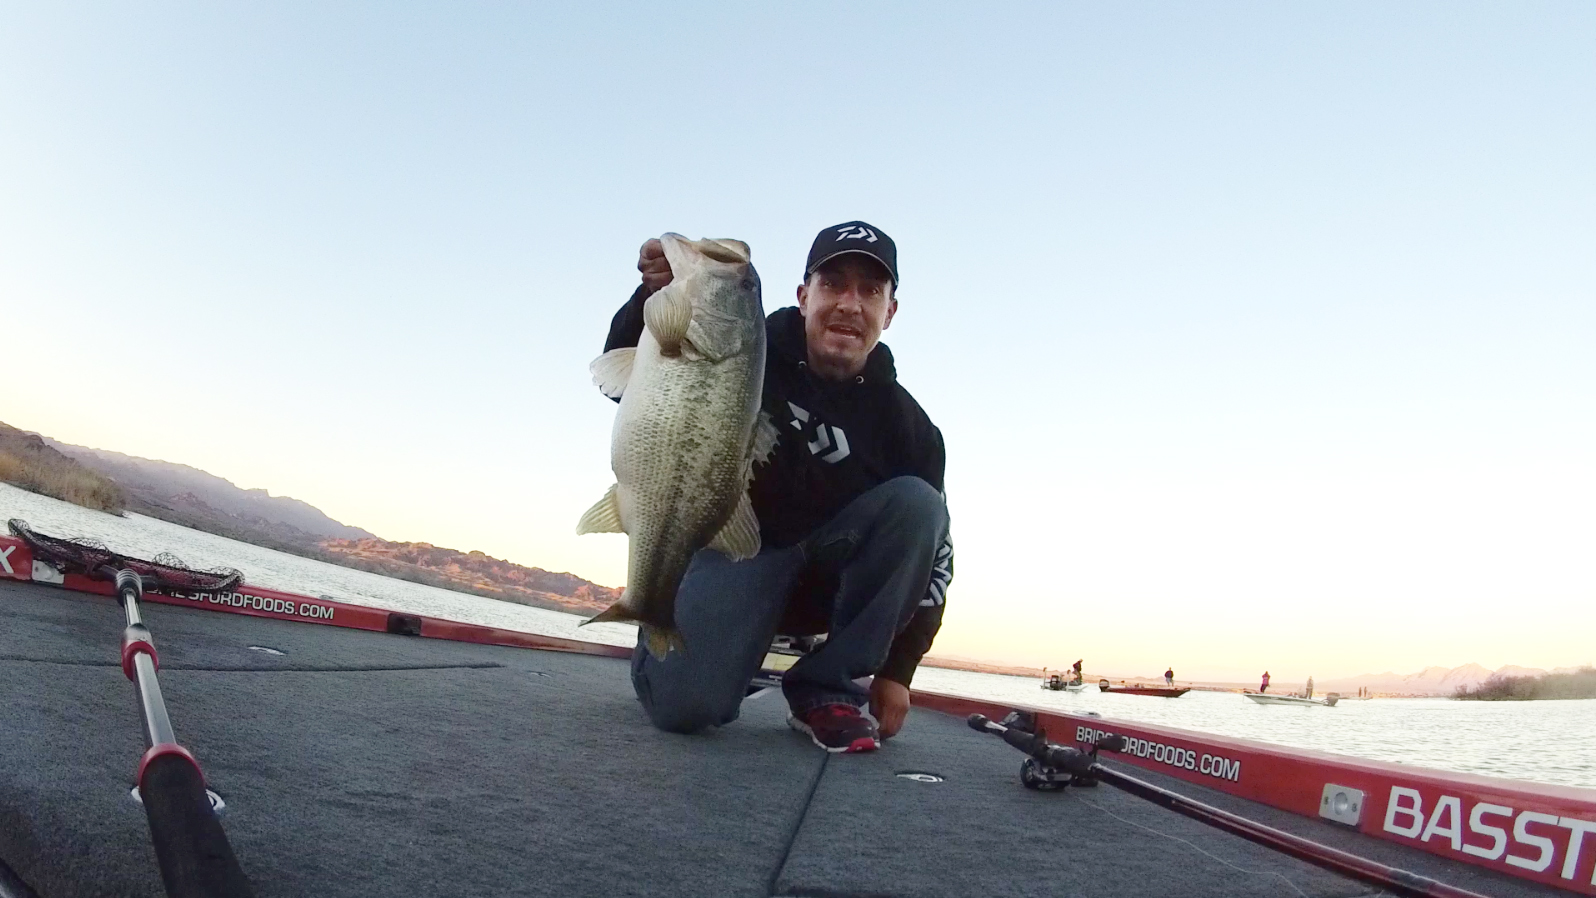 Joe Uribe Jr. s amazing final day of fishing on Lake Havasu